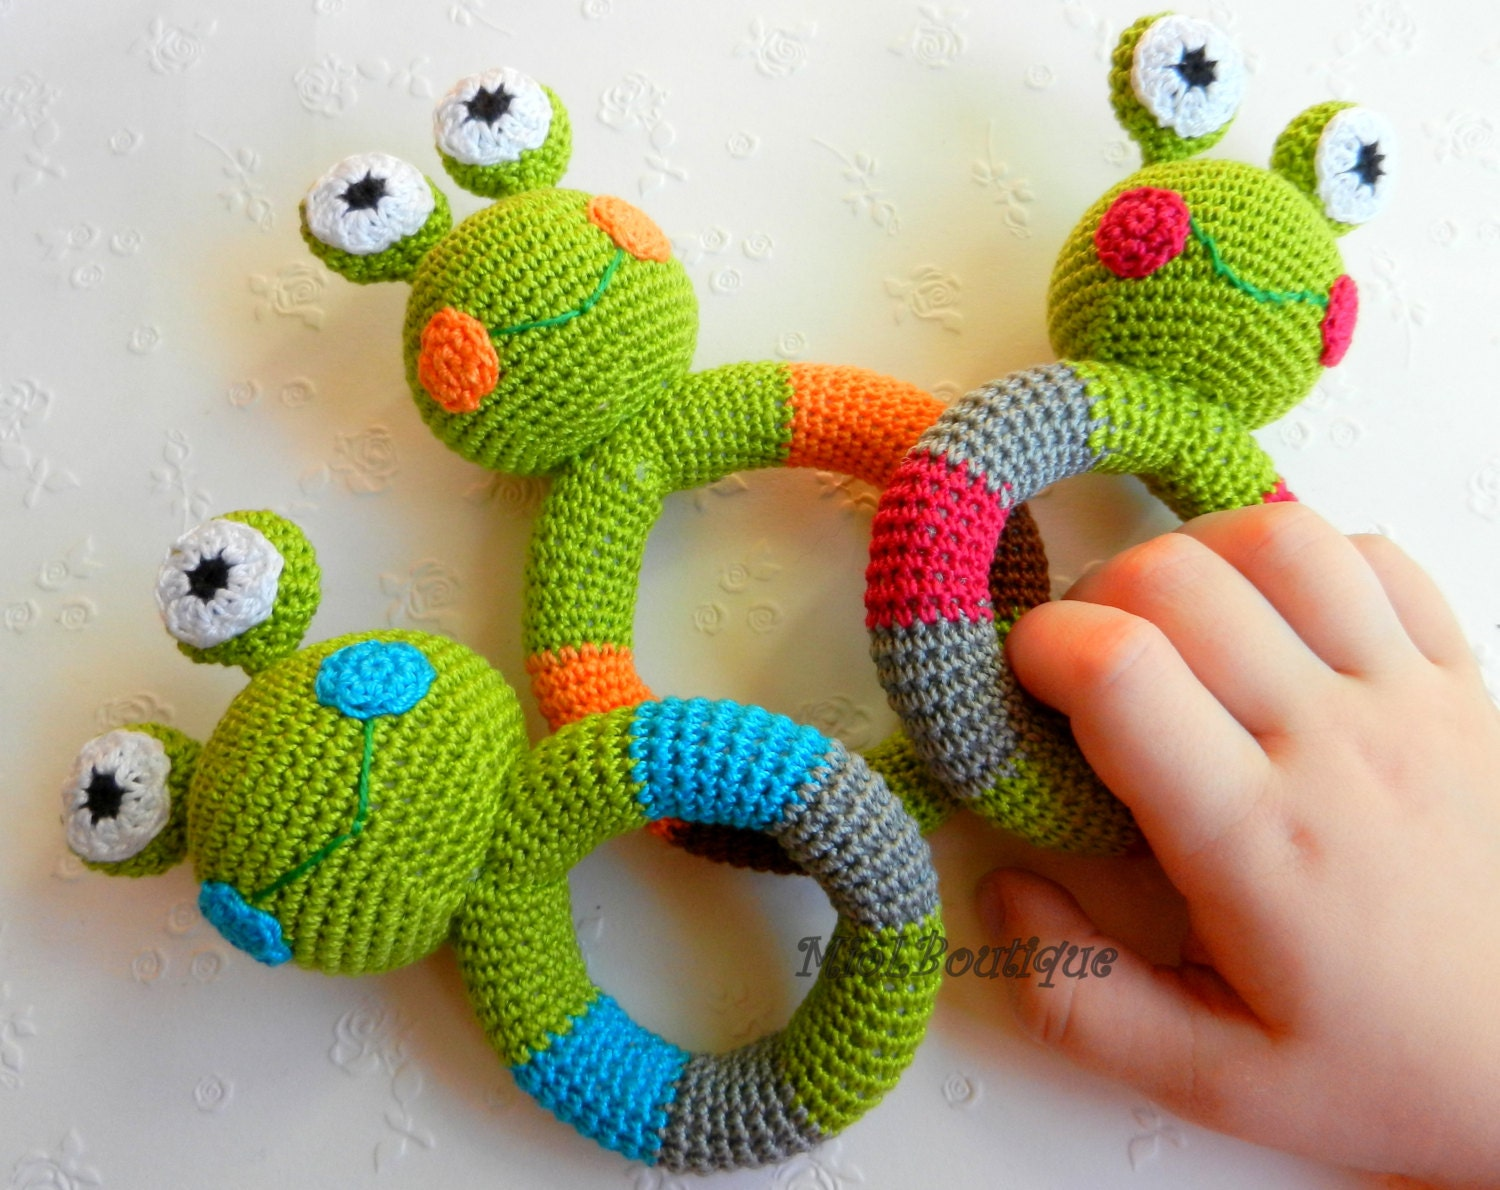 Beginner Crochet Patterns For Baby Toys : Crochet baby toy Grasping and Teething Toys Frog Stuffed toys